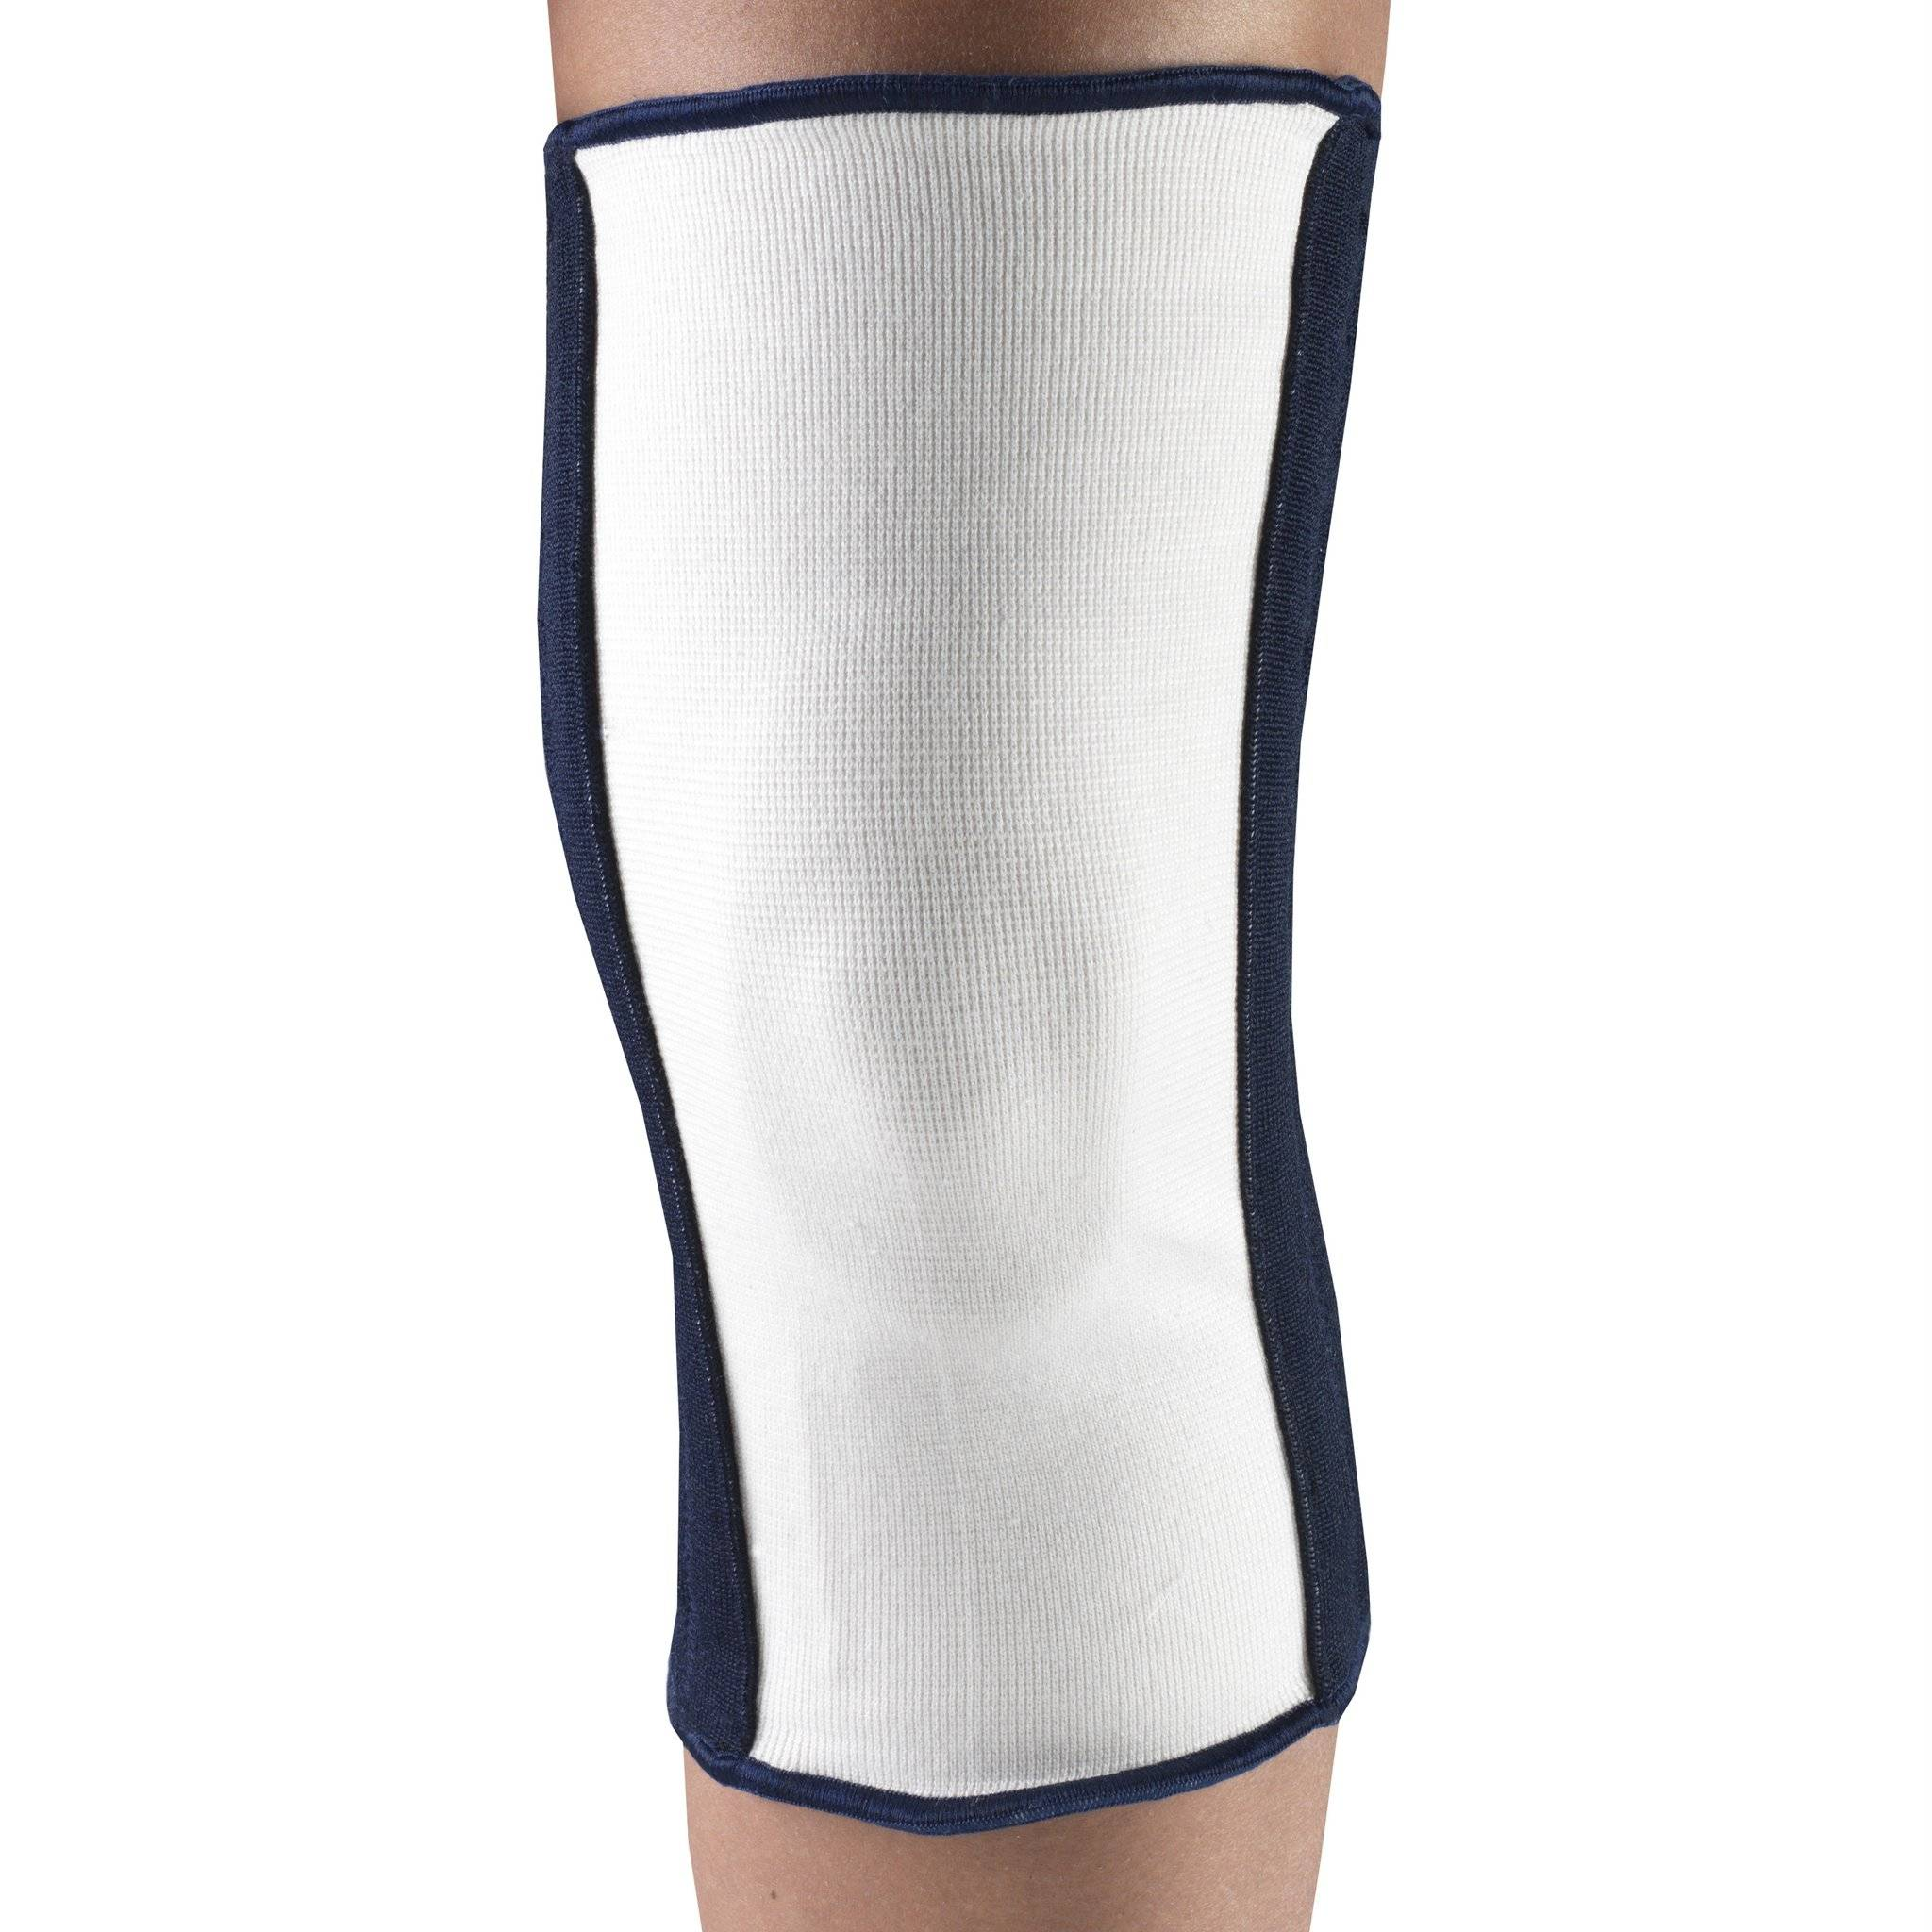 2425 / KNEE SUPPORT WITH VISCOELASTIC INSERT